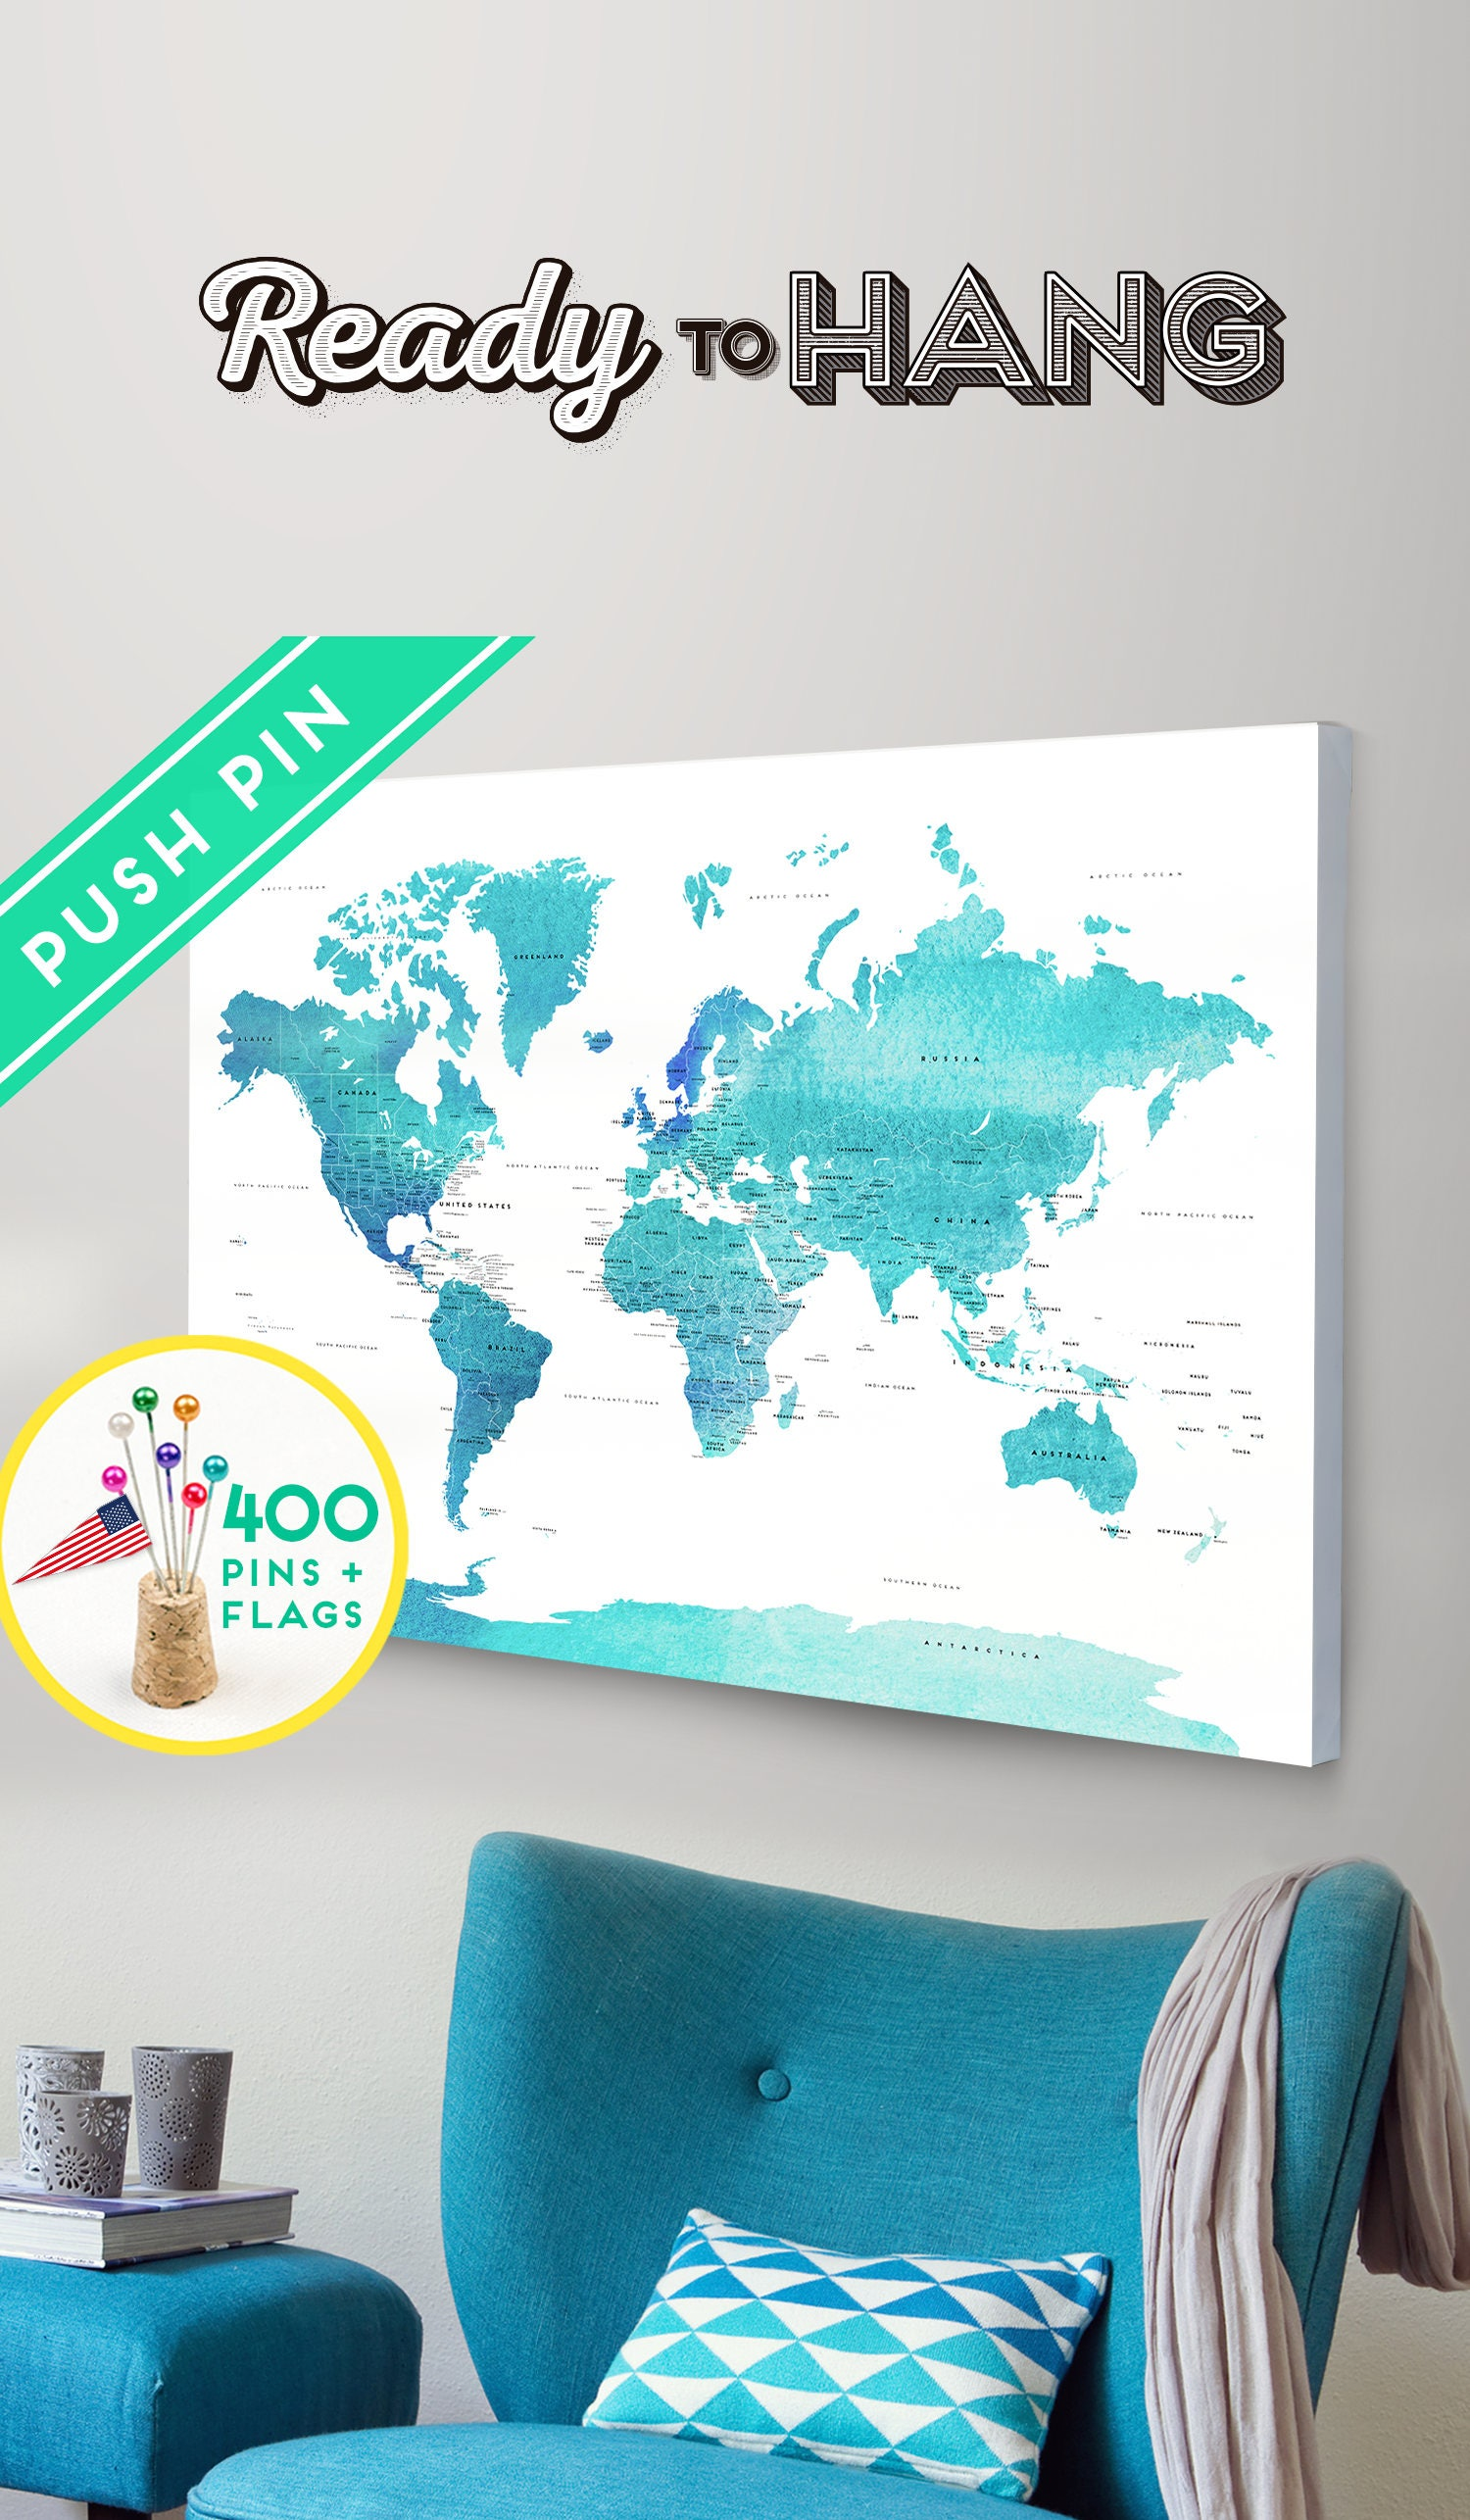 Push Pin World Map CANVAS World Map Watercolor Blue Countries - World Map with Pins, Pin It Map, Pin it Adventures, Gift Idea, 240 Pins